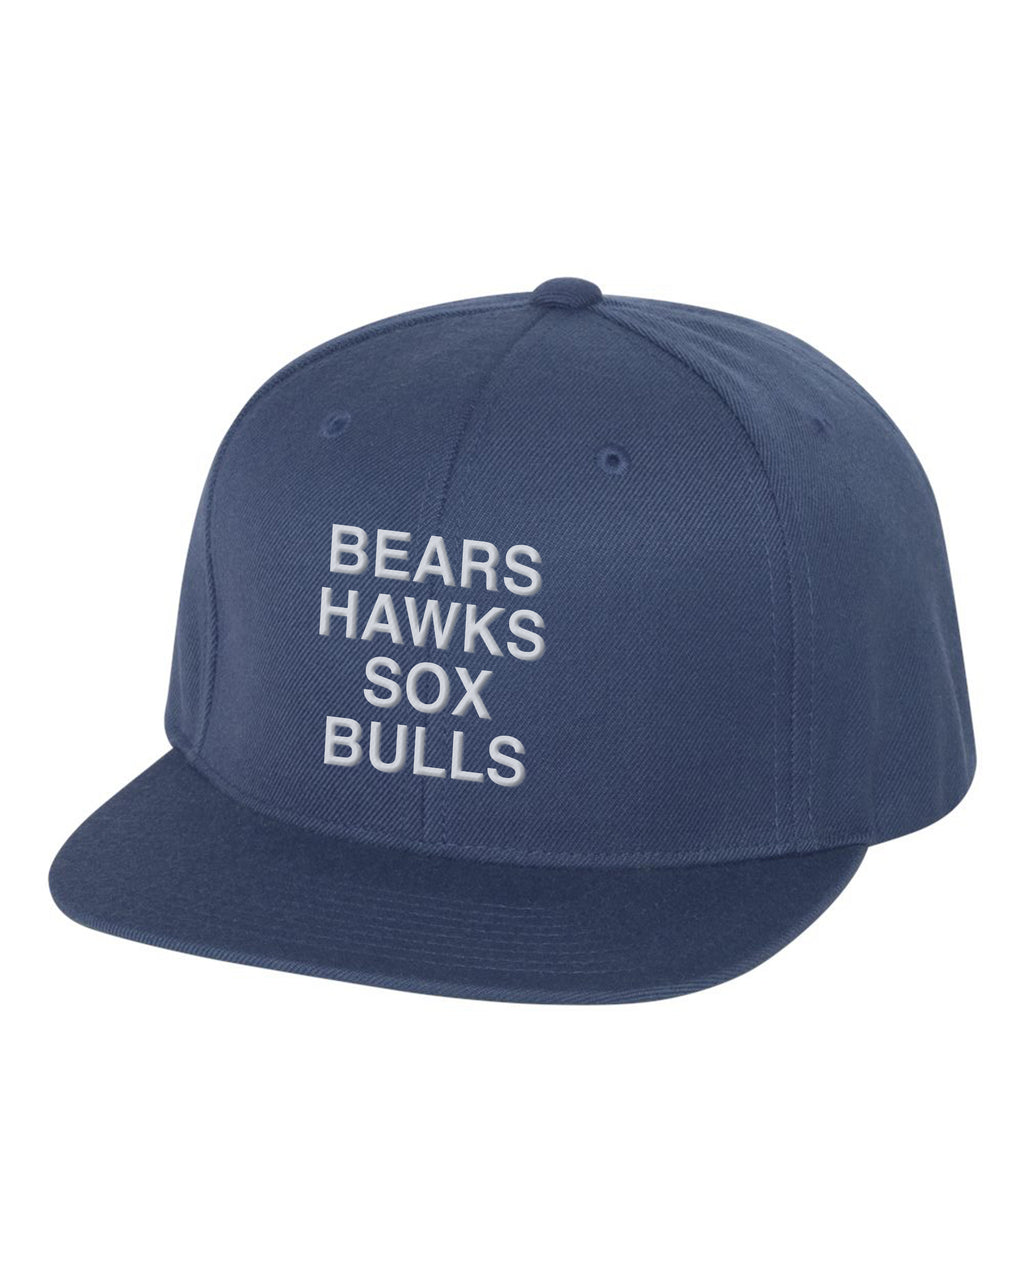 // 7 DAY PRESALE // BEARS HAWKS SOX BULLS SNAPBACK HAT - NAVY